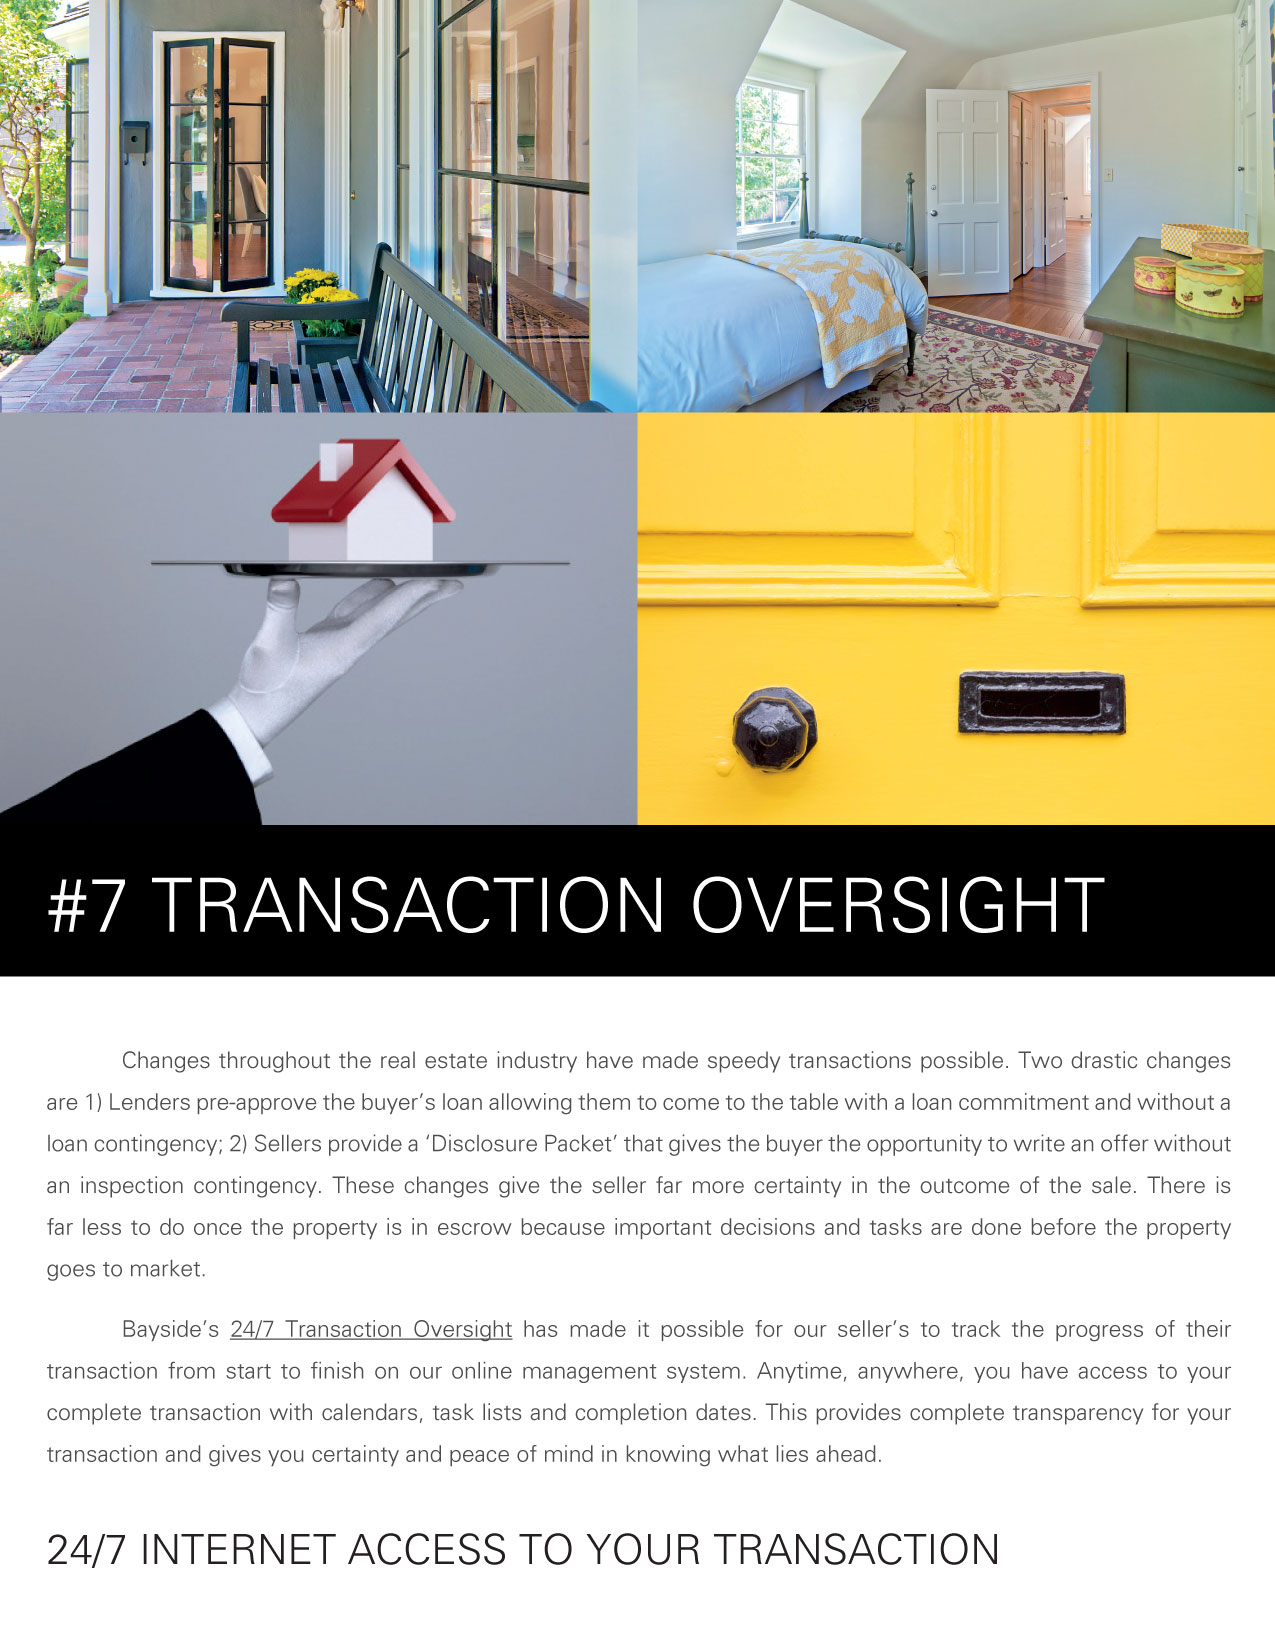 Listing Presentation - #7 Transaction Oversight